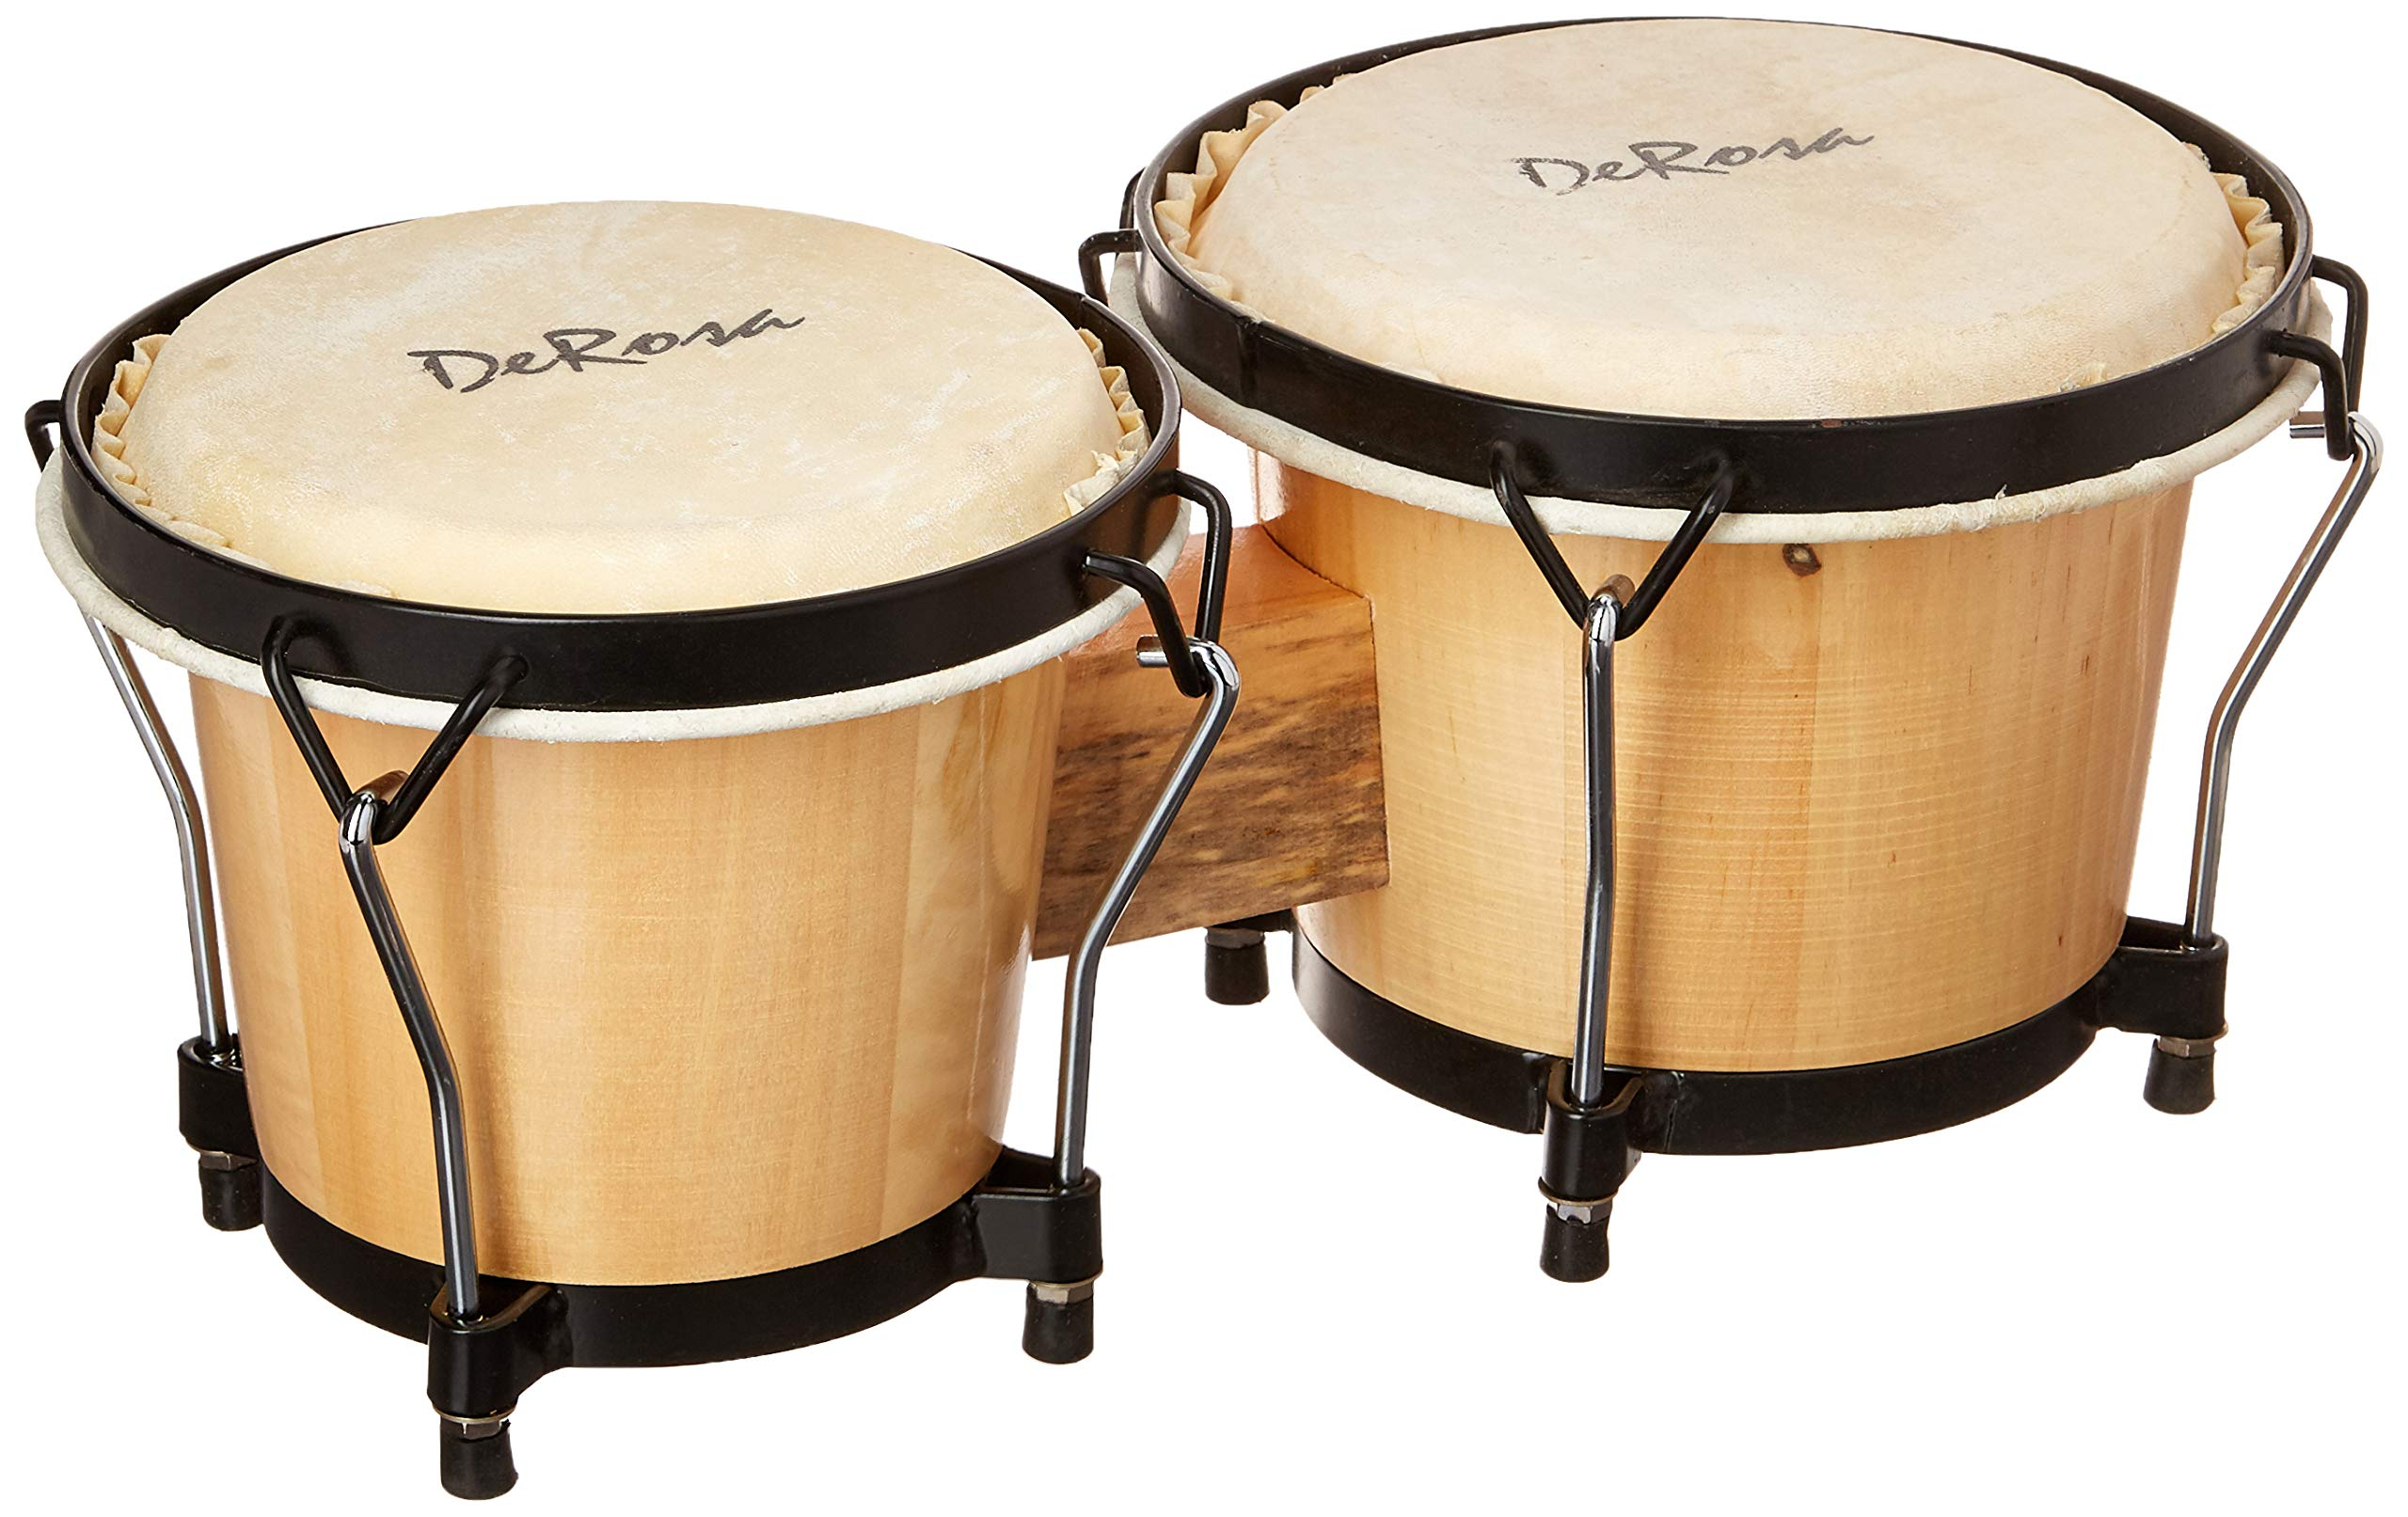 Junior Beginners Natural Percussion Double 7'' & 8'' Inch Diameter Student Wooden Bongos Drums with Tuning Wrench & DirectlyCheap(TM) Translucent Blue Medium Pick by Directly Cheap